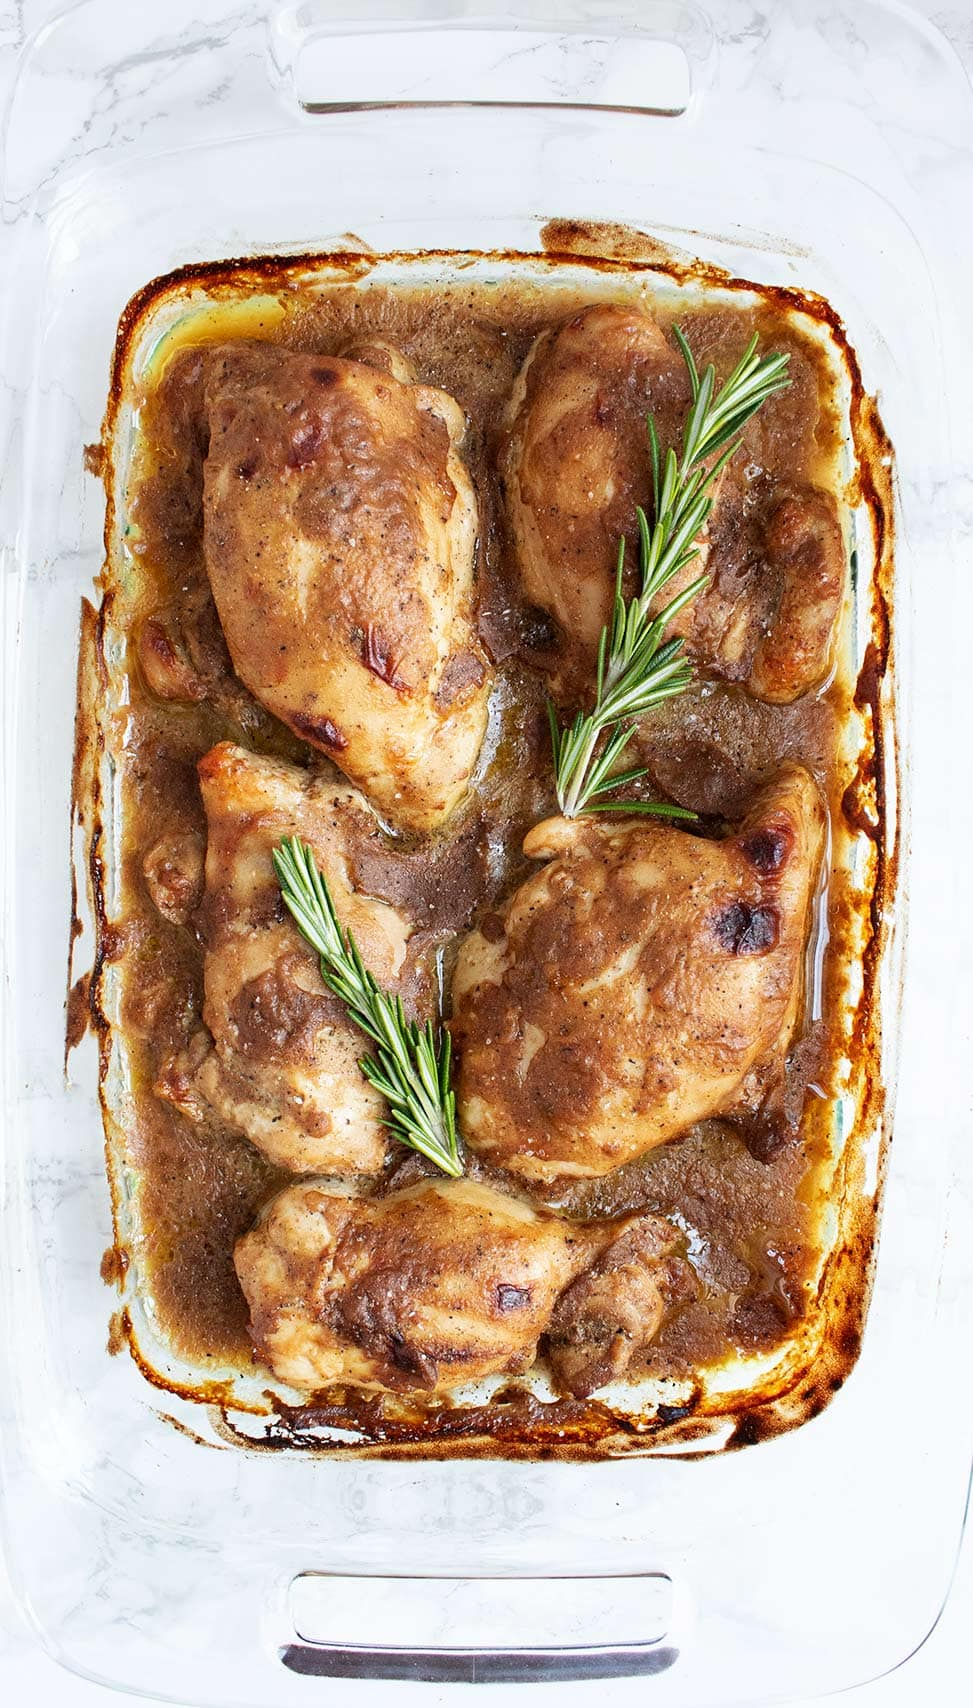 maple dijon keto chicken thighs fully cooked in a glass baking dish with rosemary on top